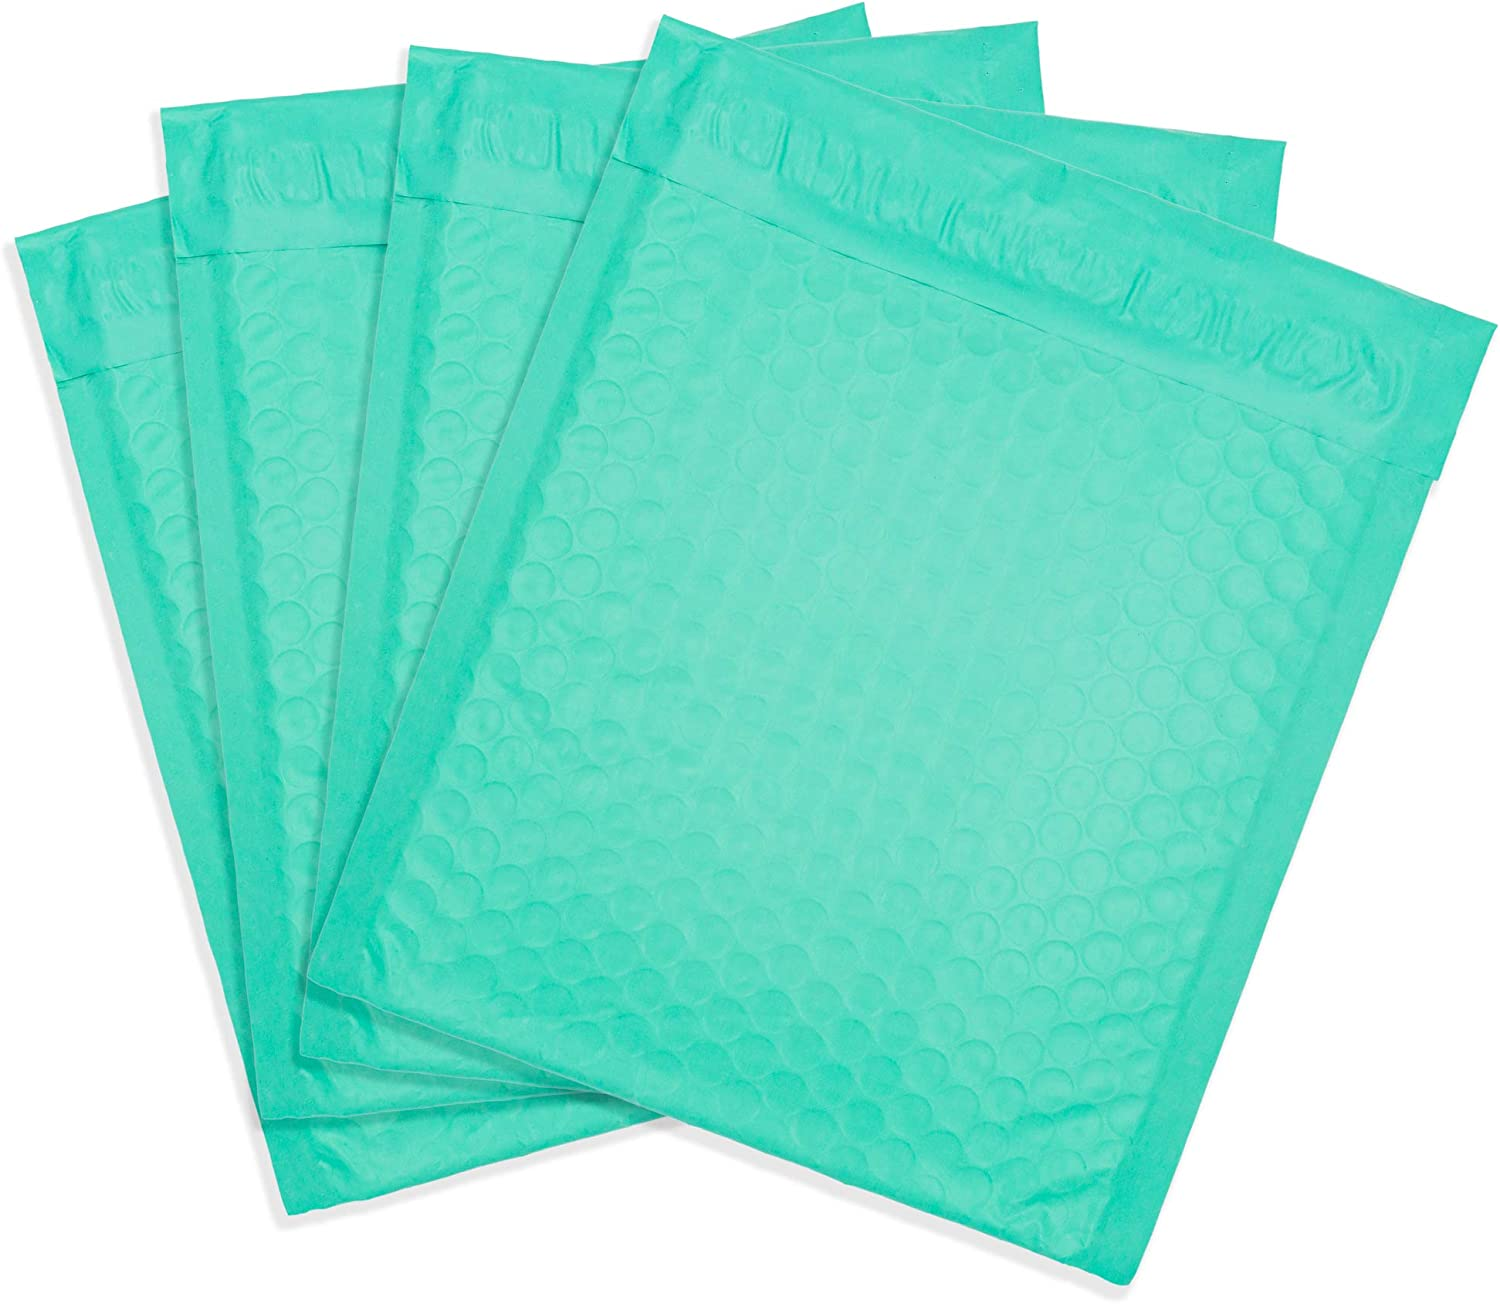 Spec Pack Pro Animer and price revision 6.5 x gift 10 inch Poly Pcs Bubble Pad Mailers Teal 25